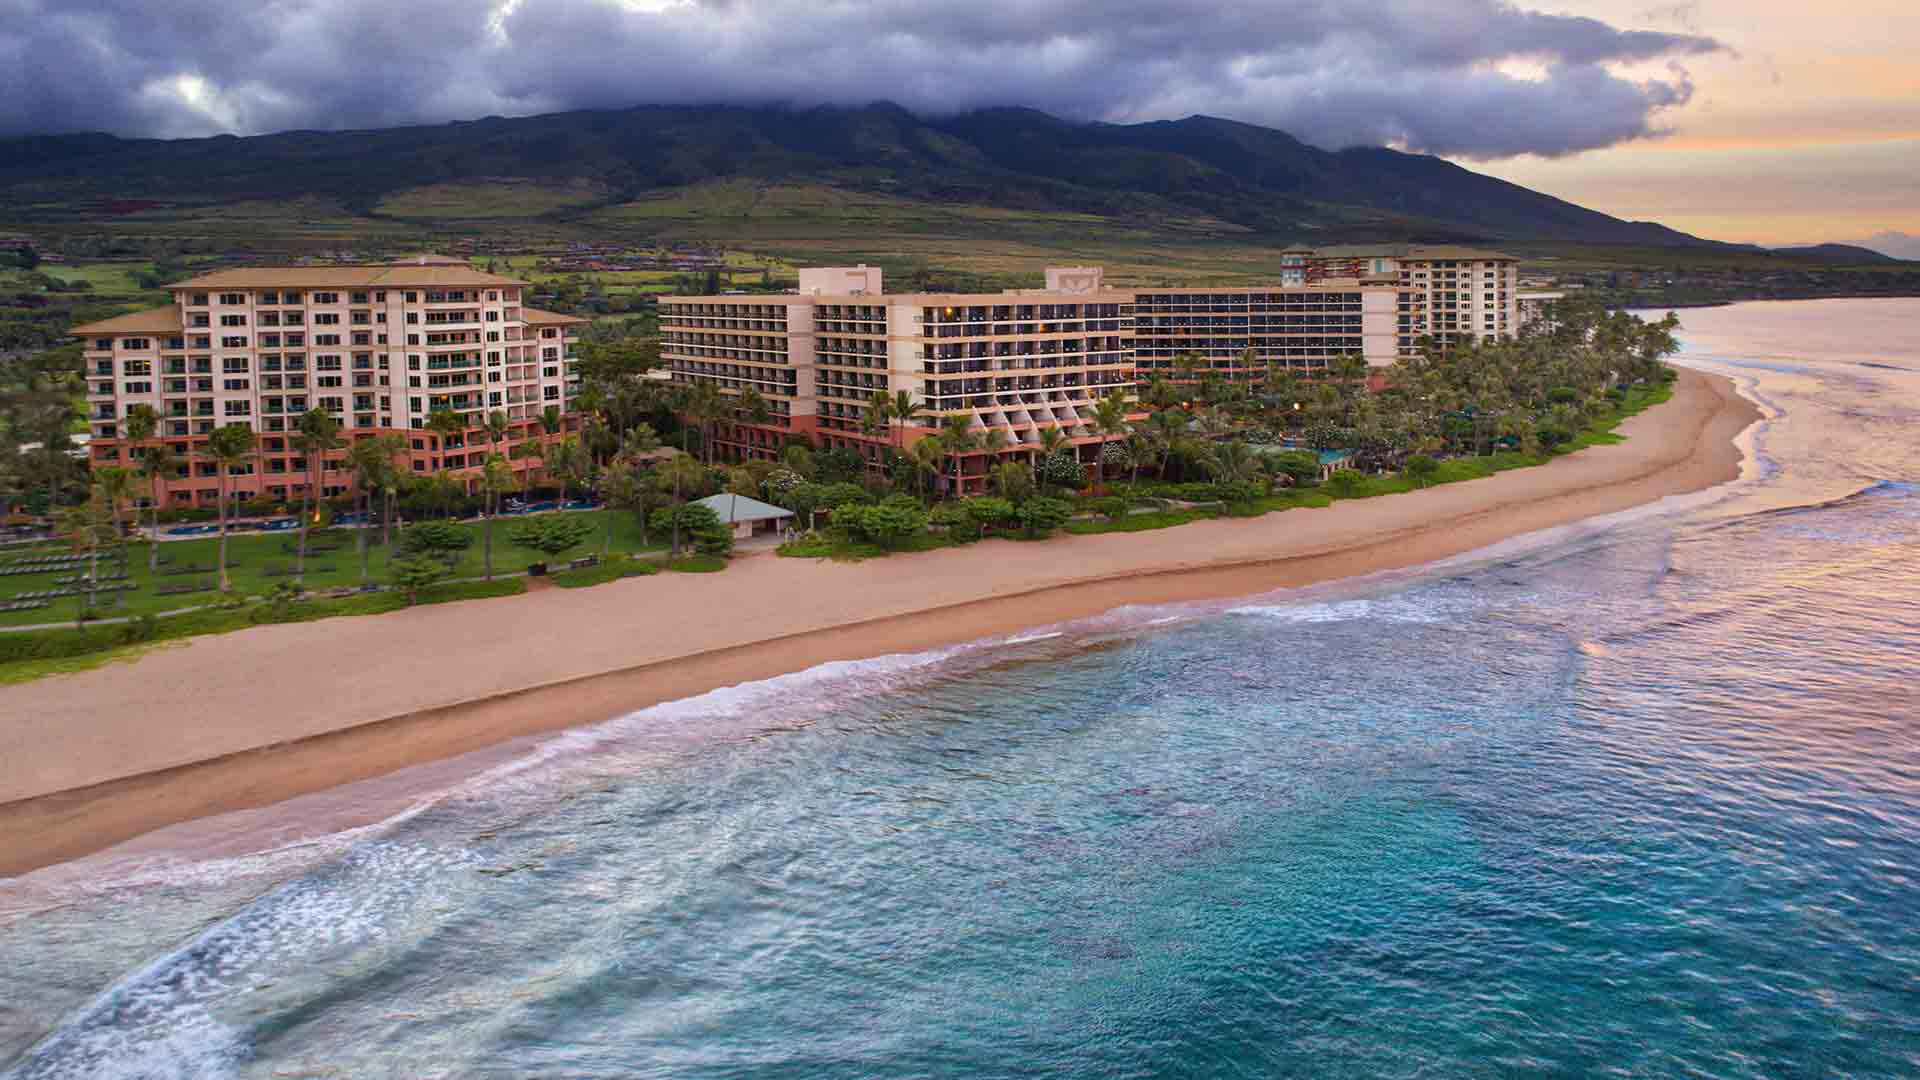 exterior aerial shot of luxury maui beachfront hotel with cloud covered mountain in the background